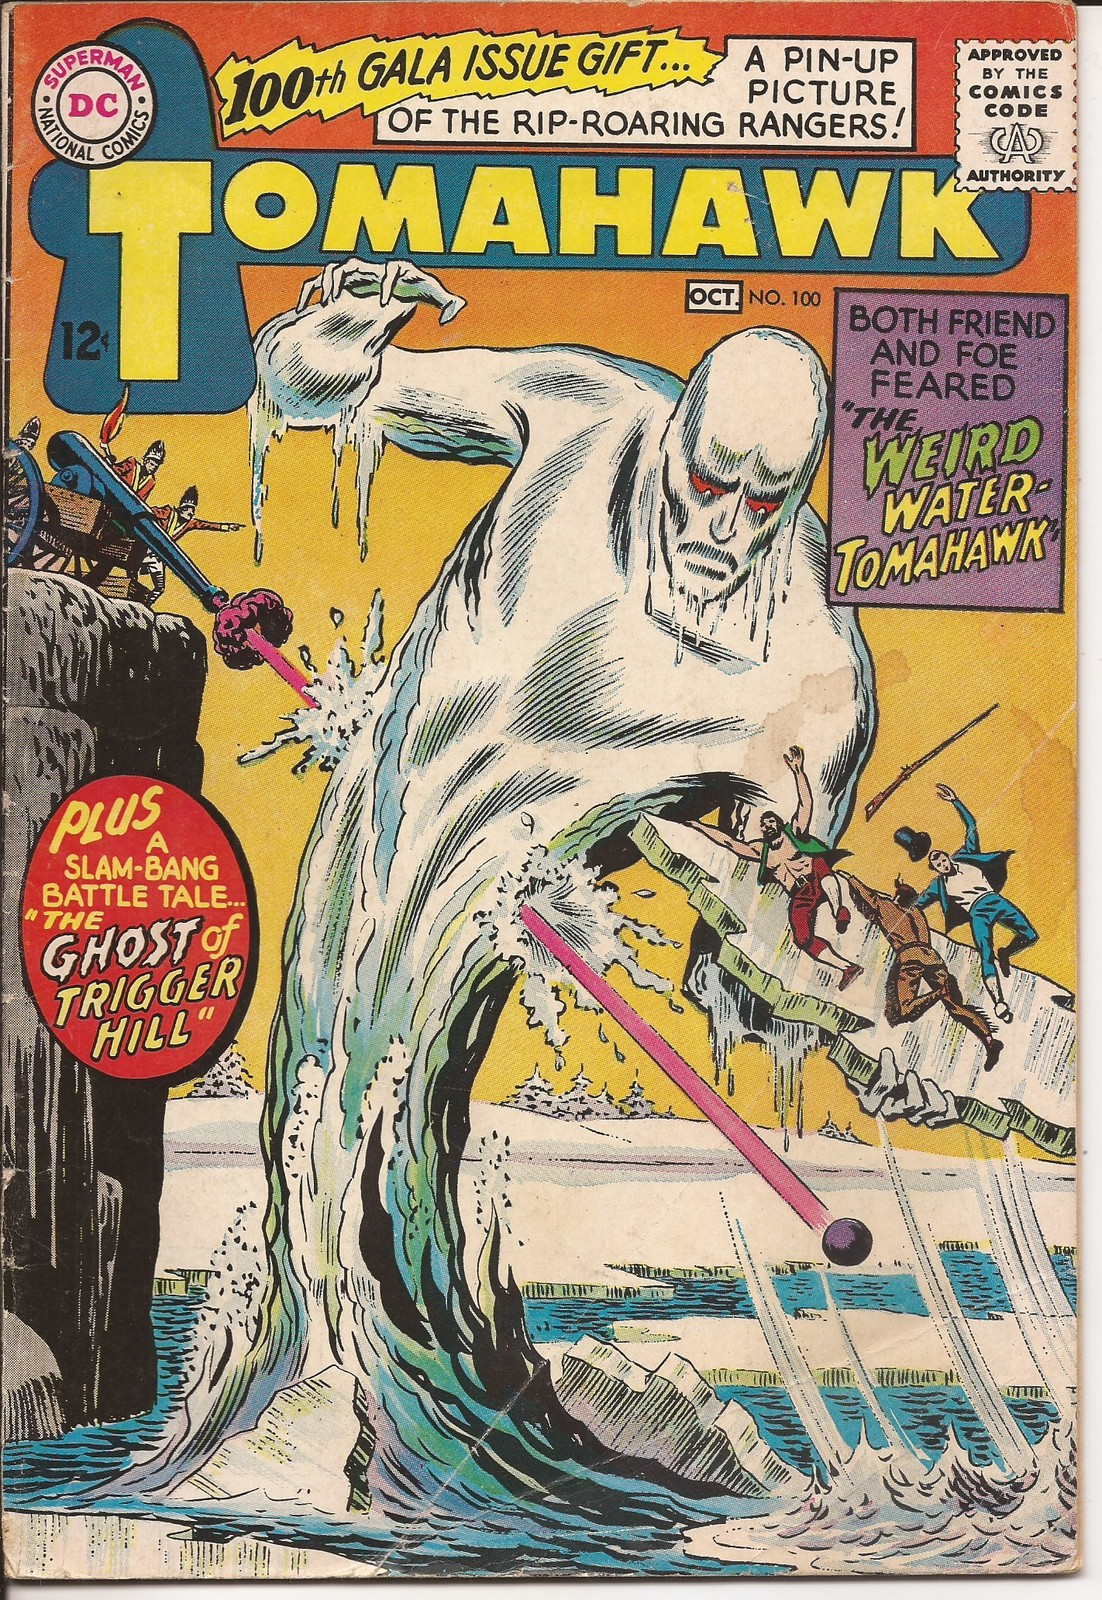 DC Tomahawk #100 Weird Water Tomahawk Ghost Of Trigger Hill